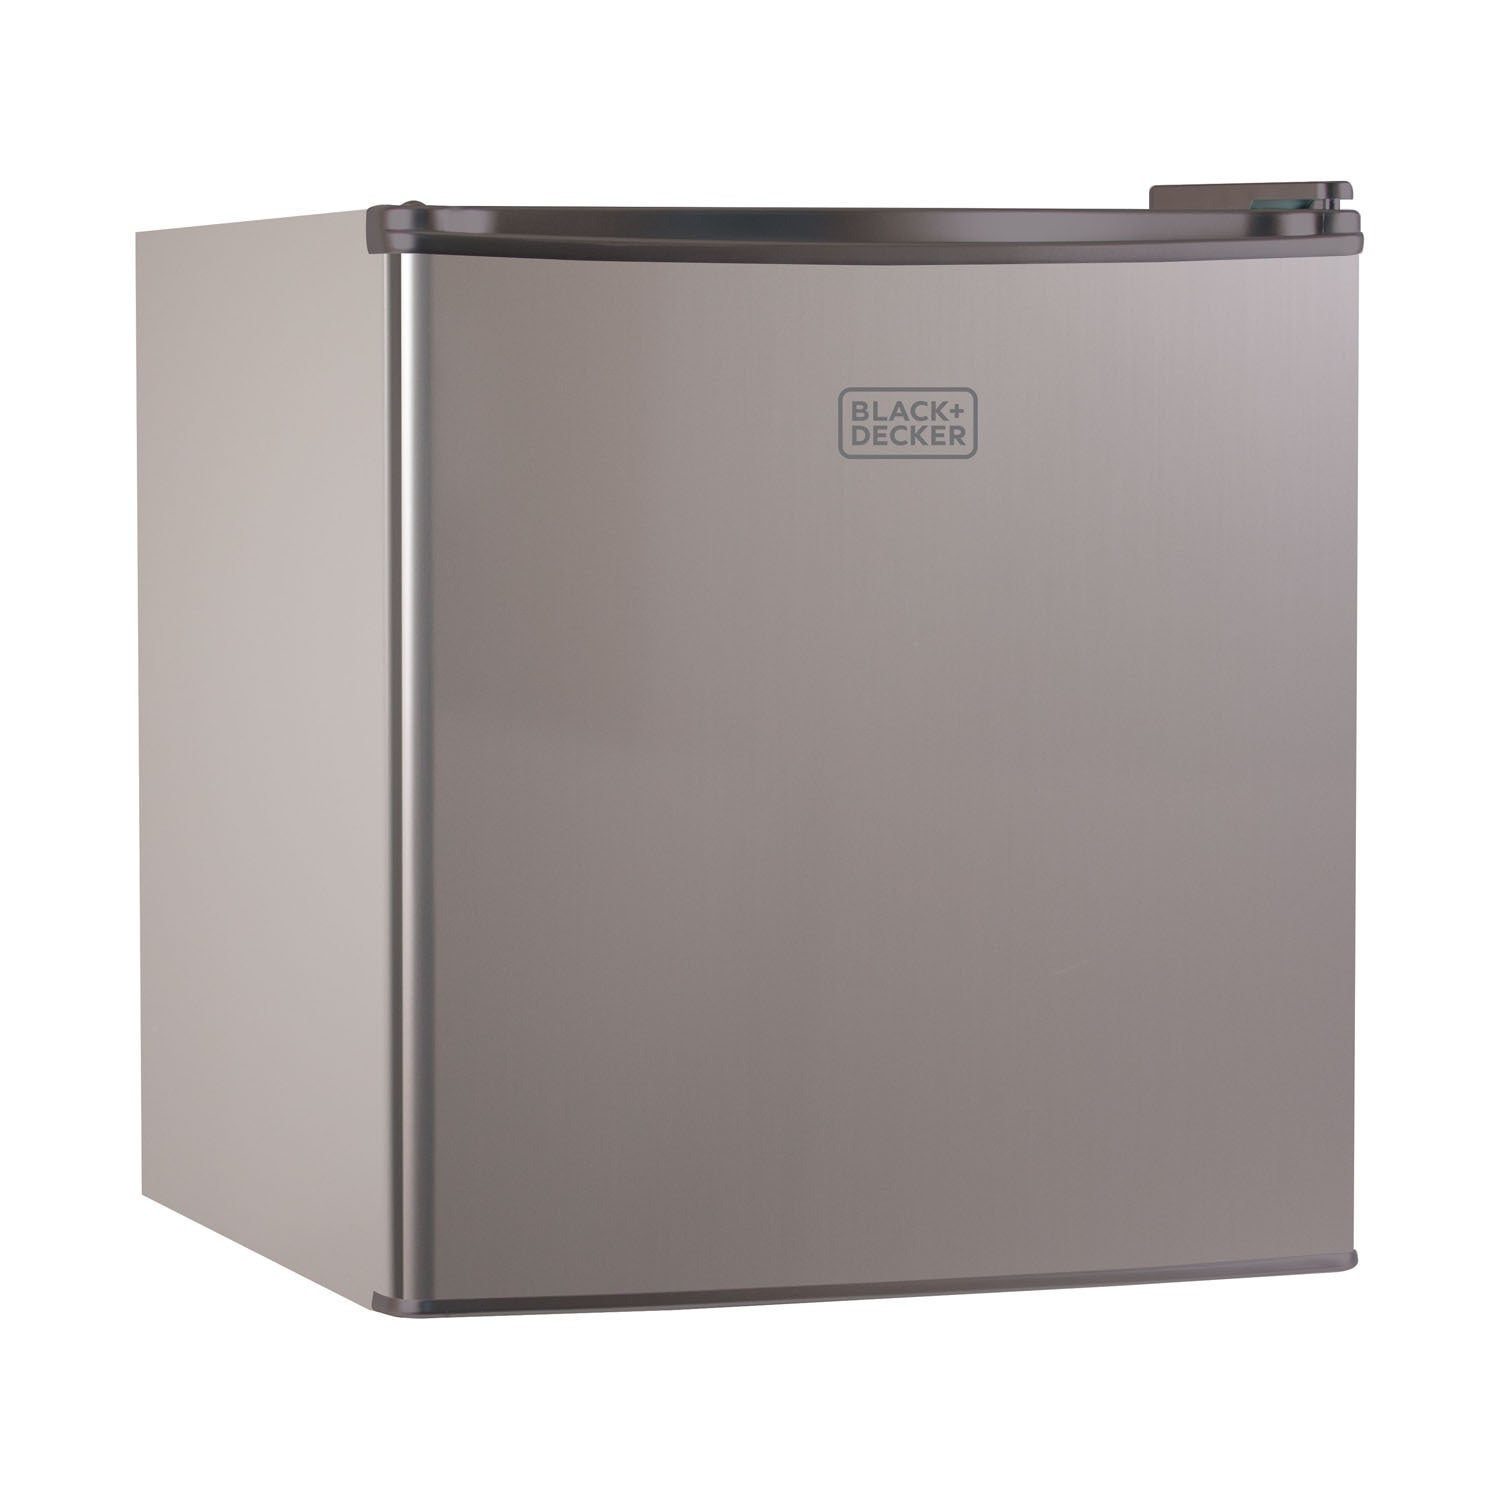 Cool Black and Decker 1.7 cu ft. Compact Fridge, Silver